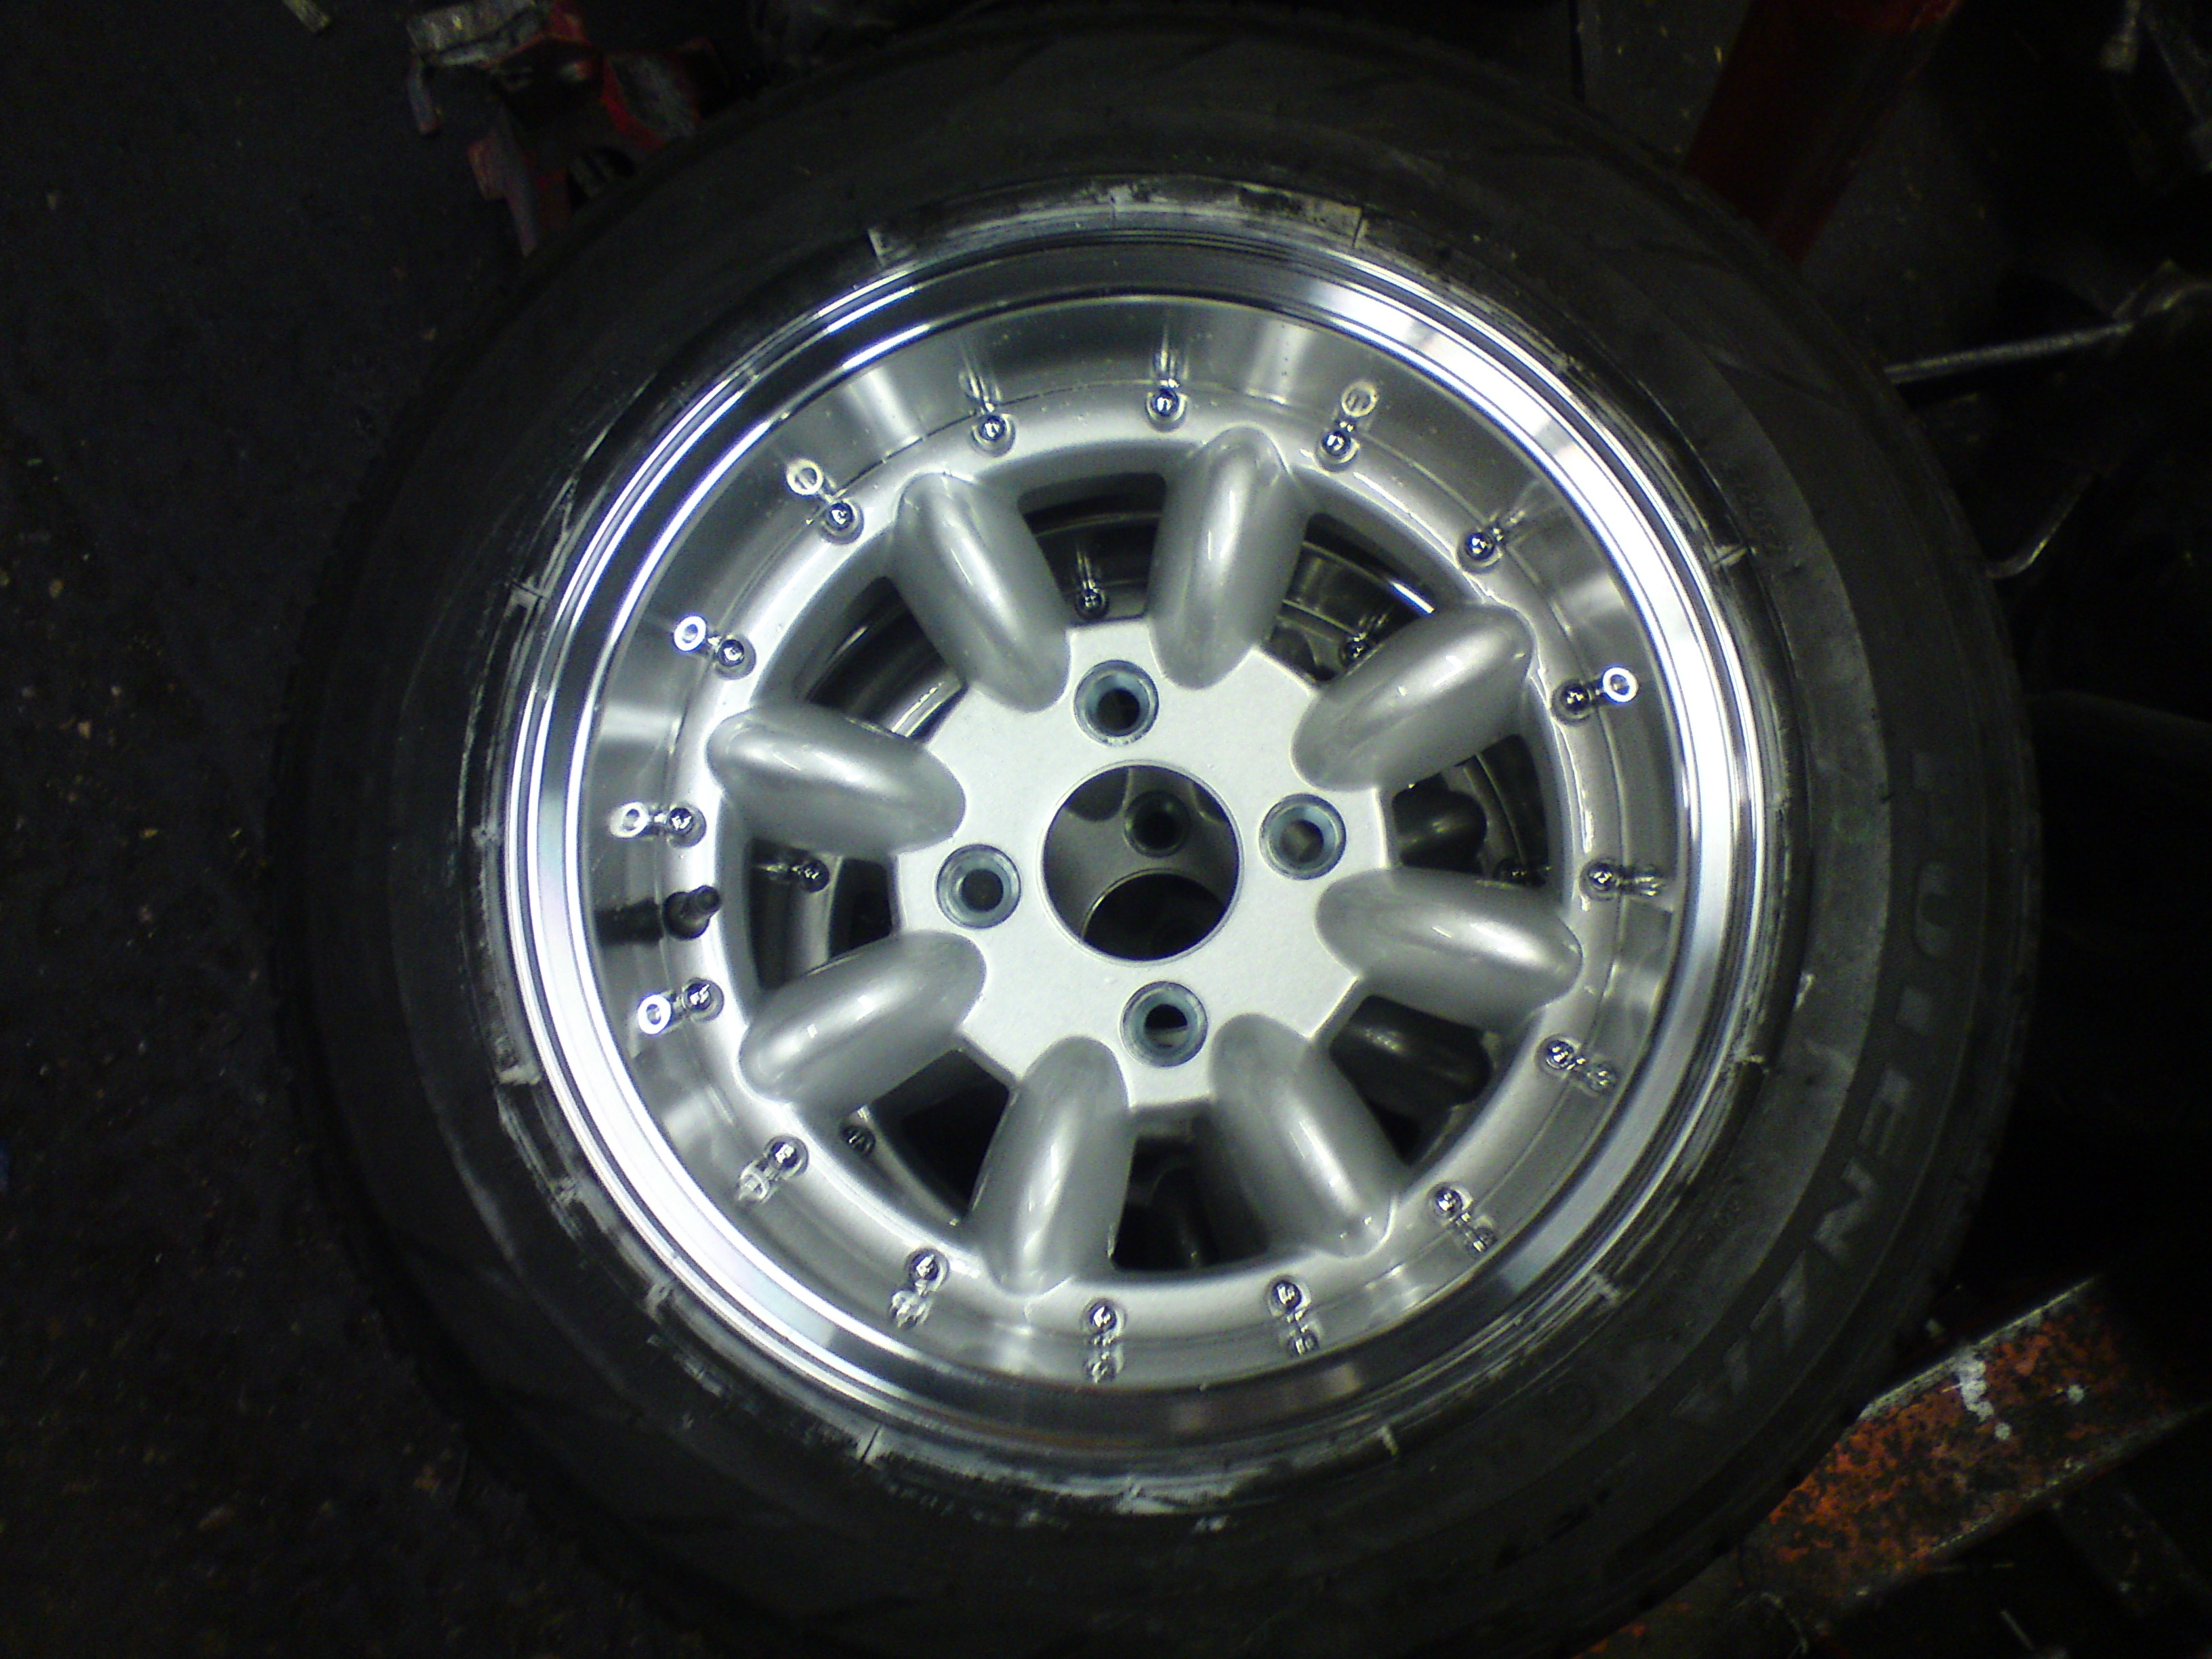 Rs And Cosworth Bits 7 X 13 Alloy Wheels And Tyres Ect